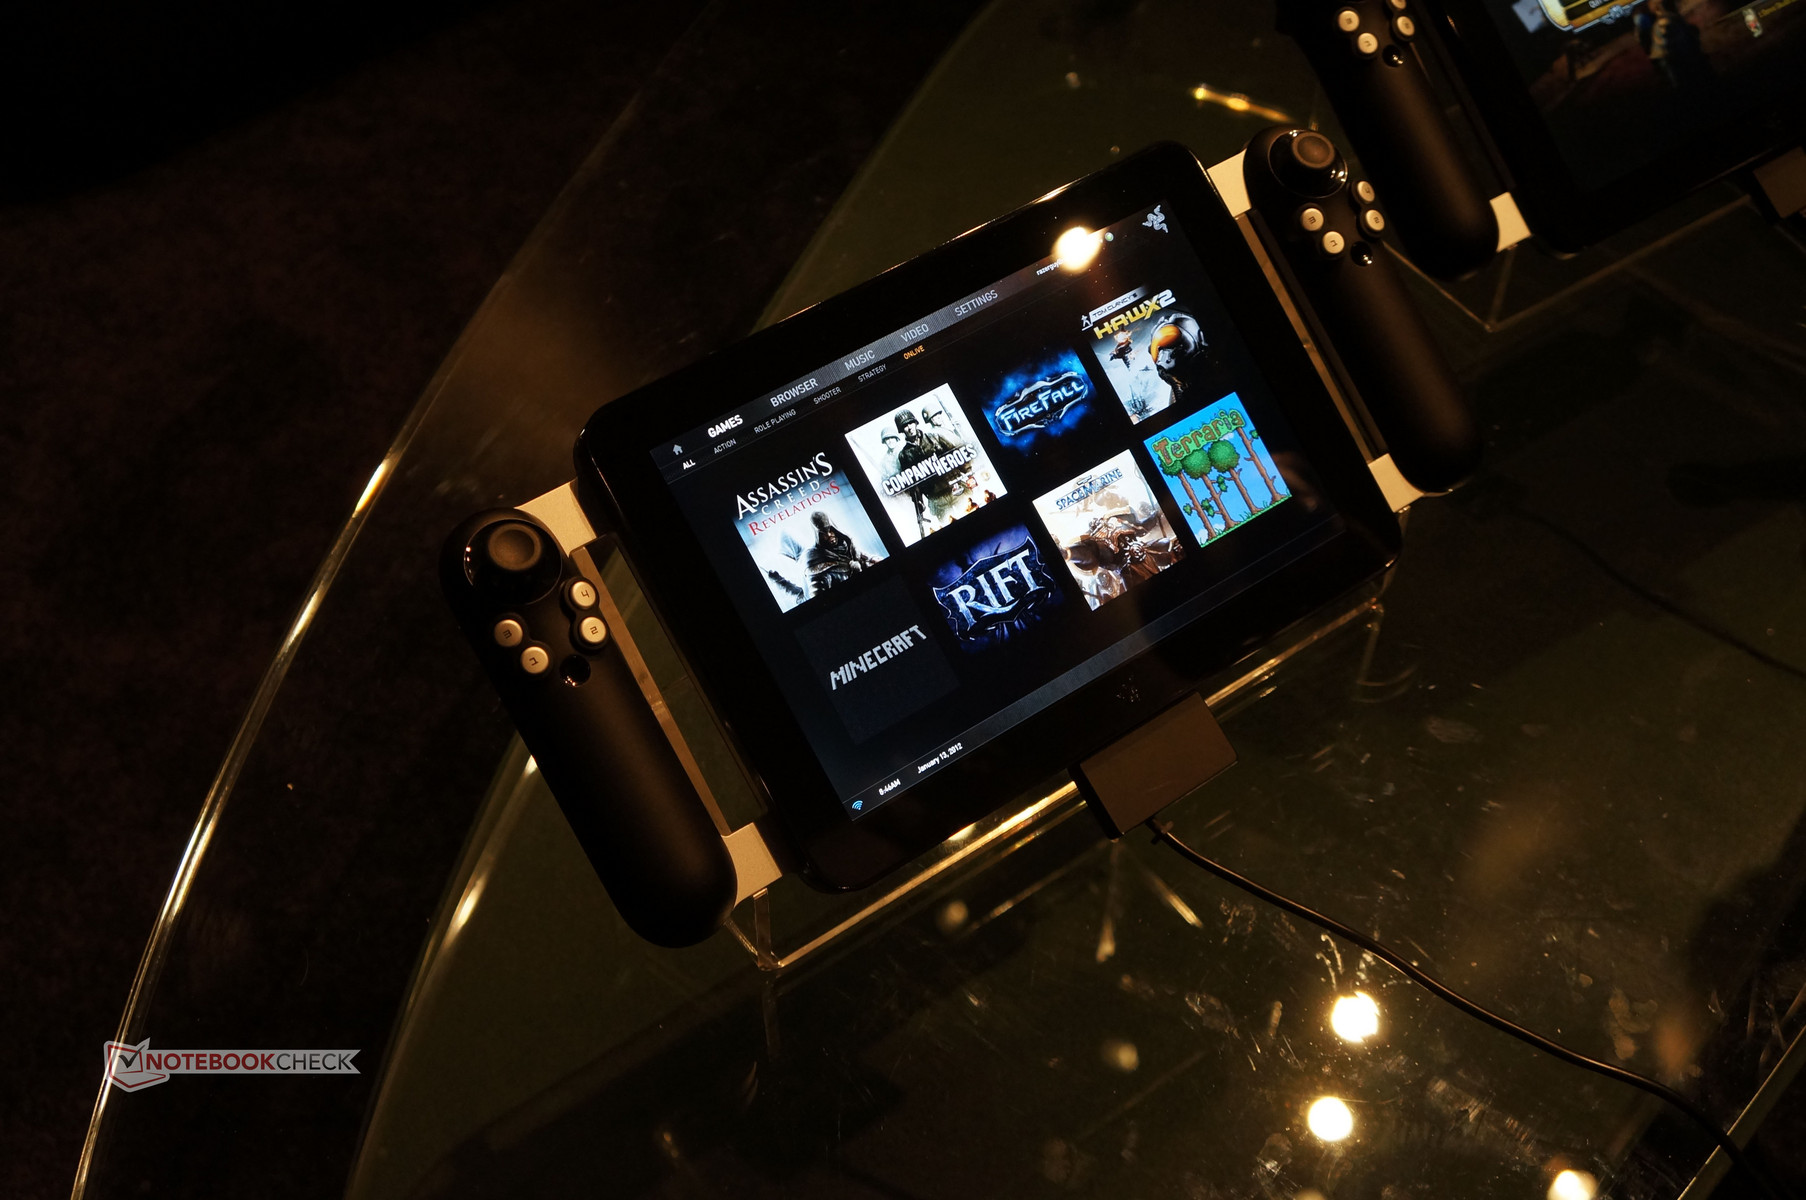 Video Project Fiona Razer Gaming Tablet Notebookcheck Net News